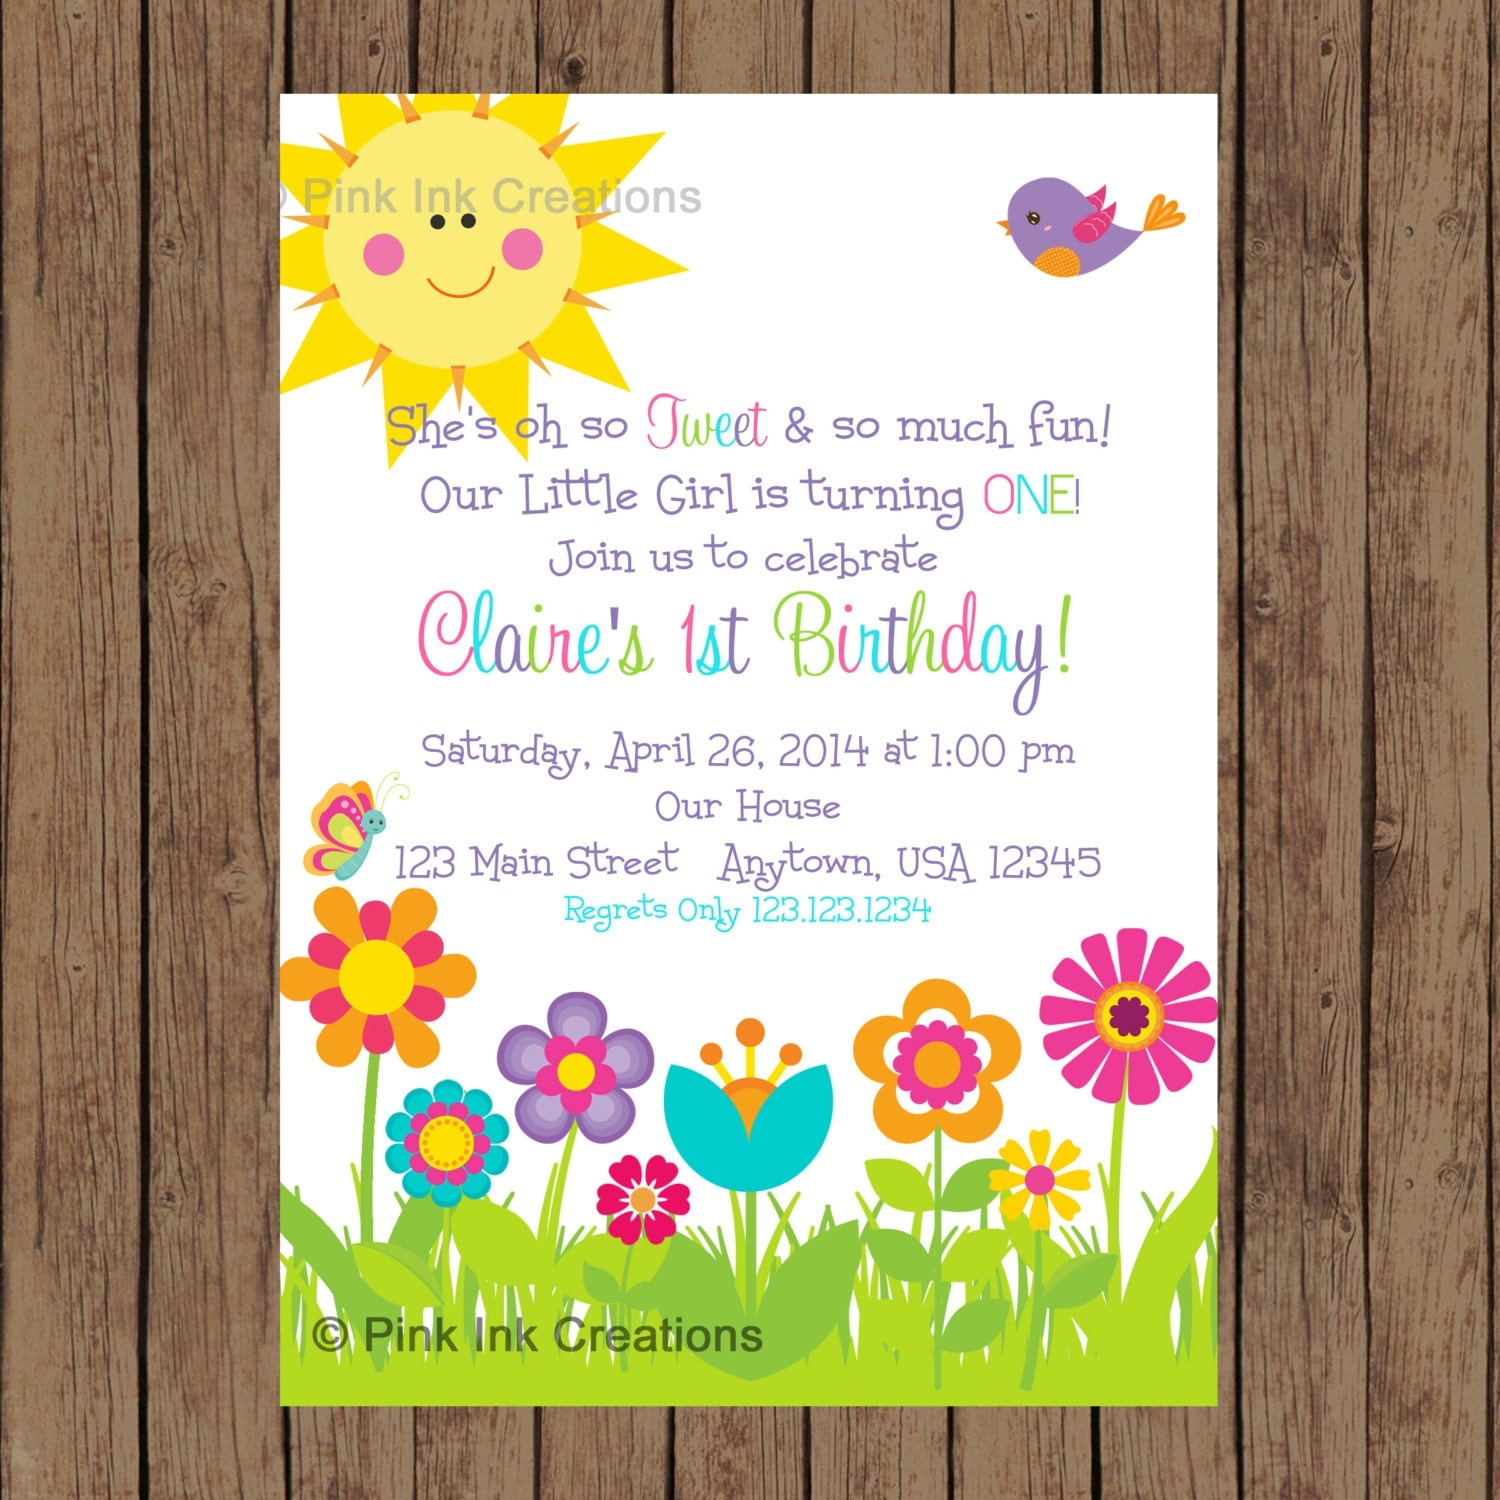 Drop In Party Invitation Wording is nice invitations example